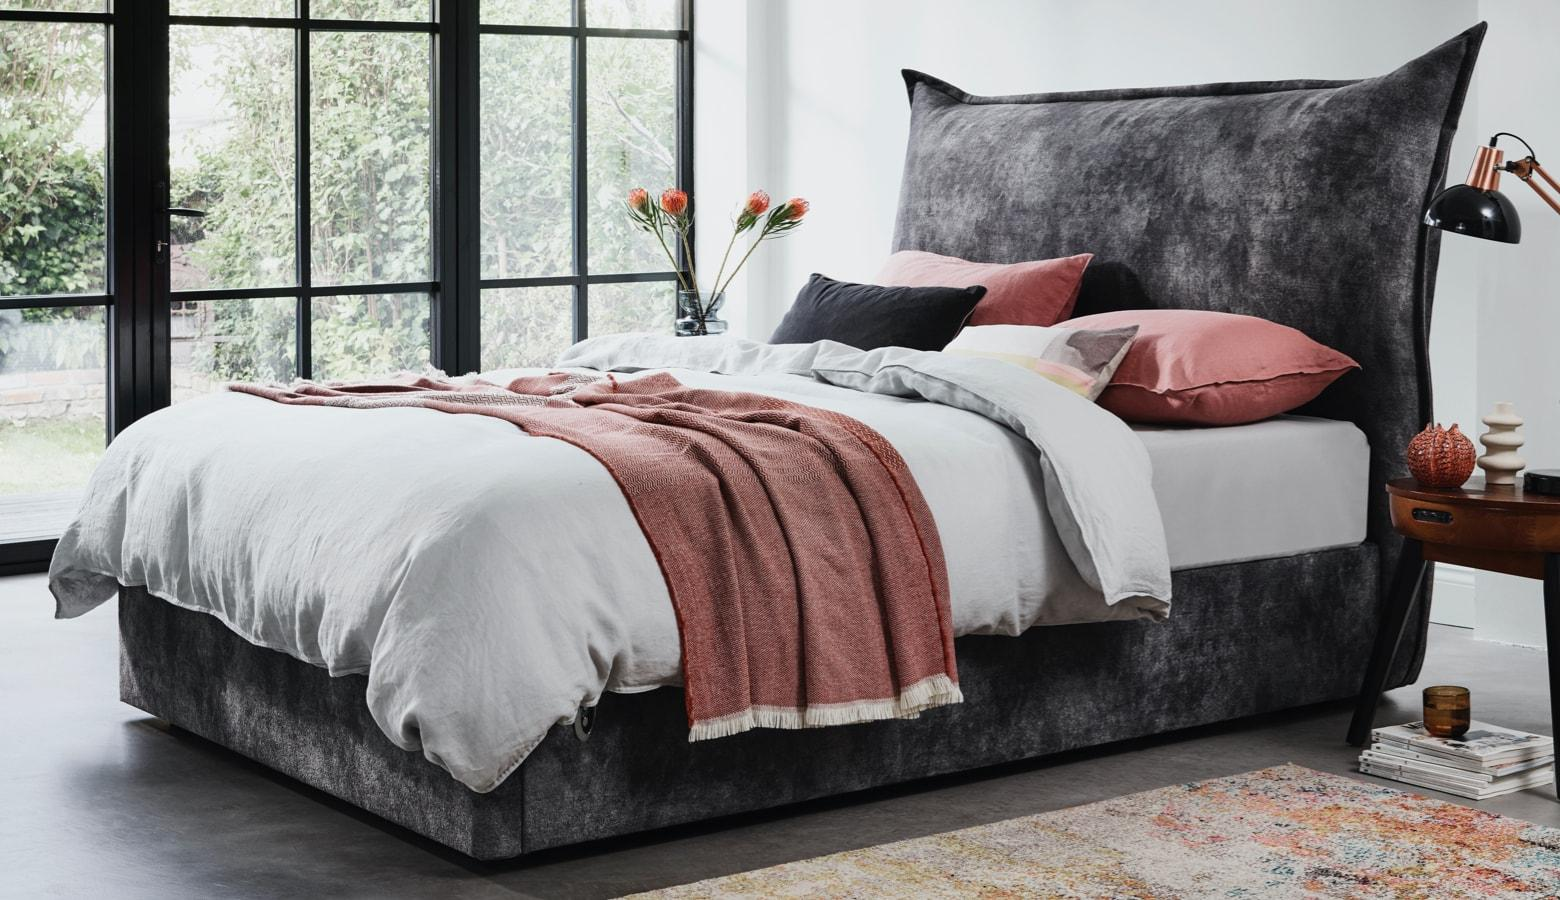 Furniture Village Furmanac Bed